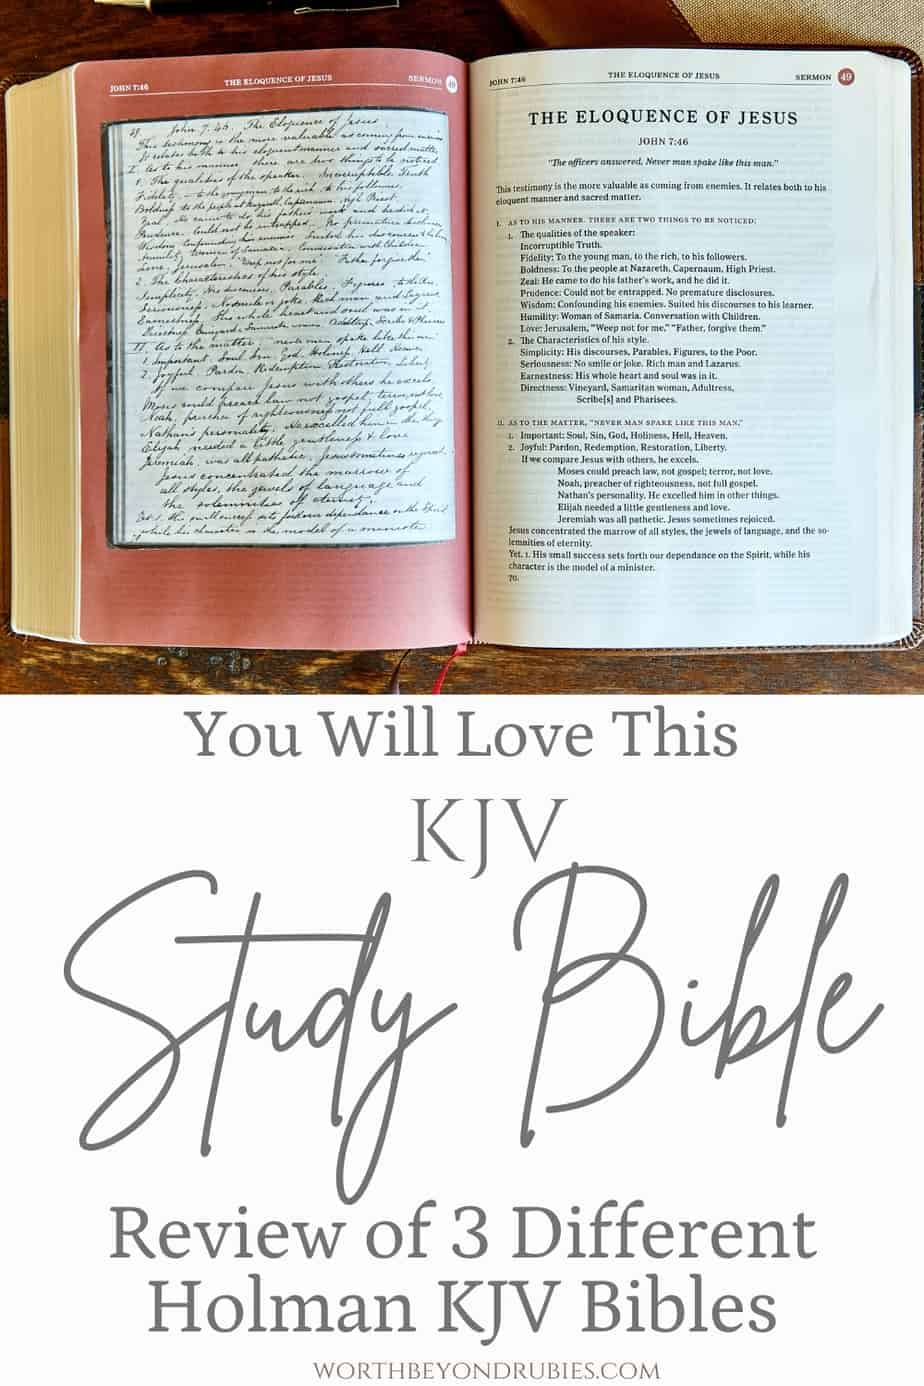 An image of the Holman KJV Study Bible opened up to a page and text that says You Will Love This KJV Study Bible - Review of 3 Different Holman KJV Bibles